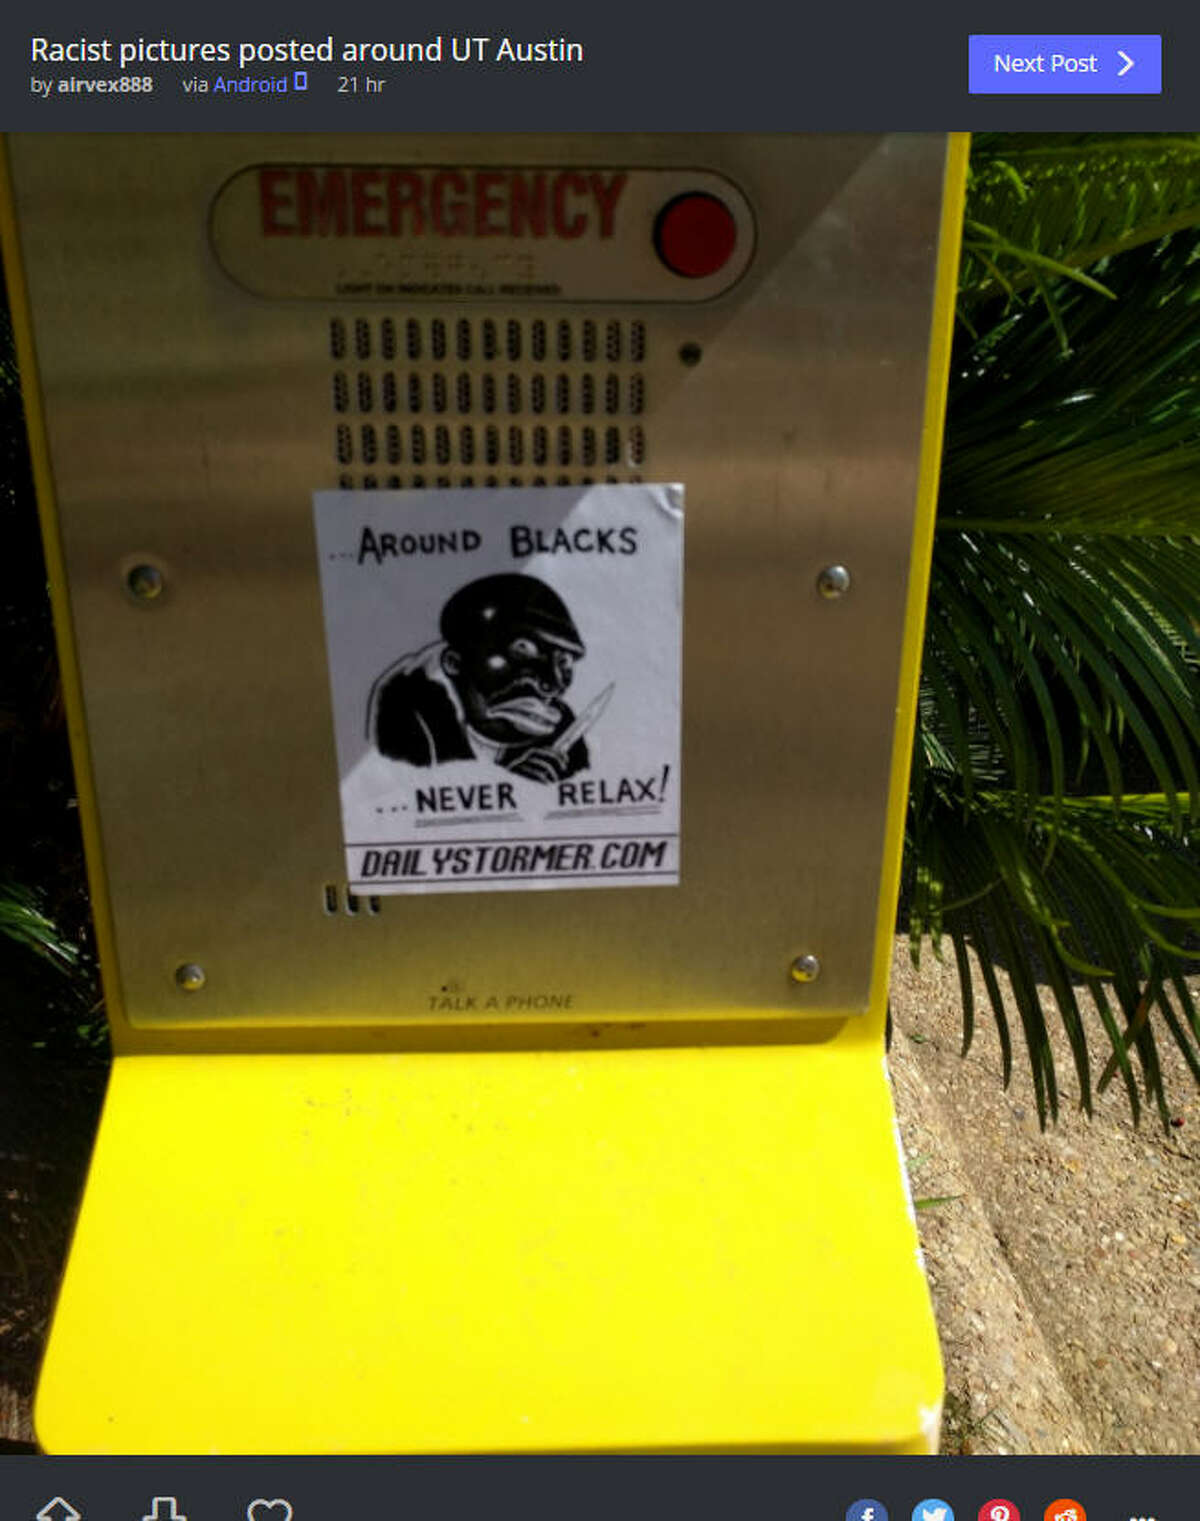 Racist flyers were posted all over the University of Texas campus on Tuesday, May 2, just one day after a tragic stabbing that left one dead and three injured. Photo: airvex888 Imgur